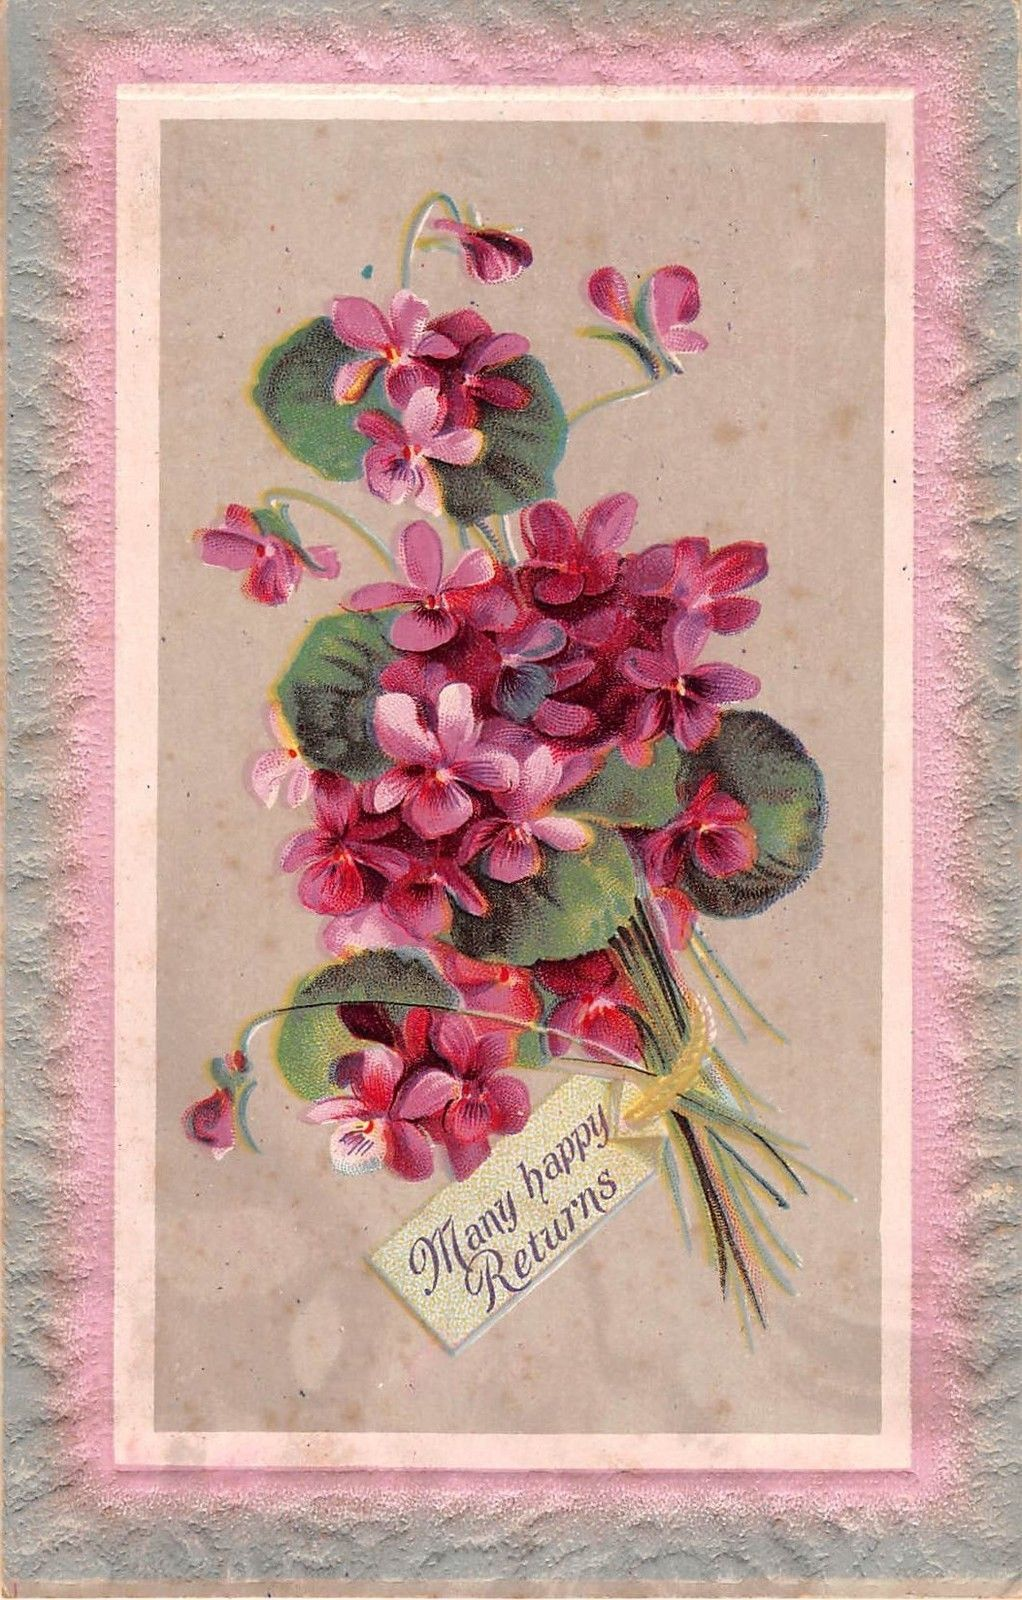 Hereus a wonderful old birthday postcard of a bouquet of lovely